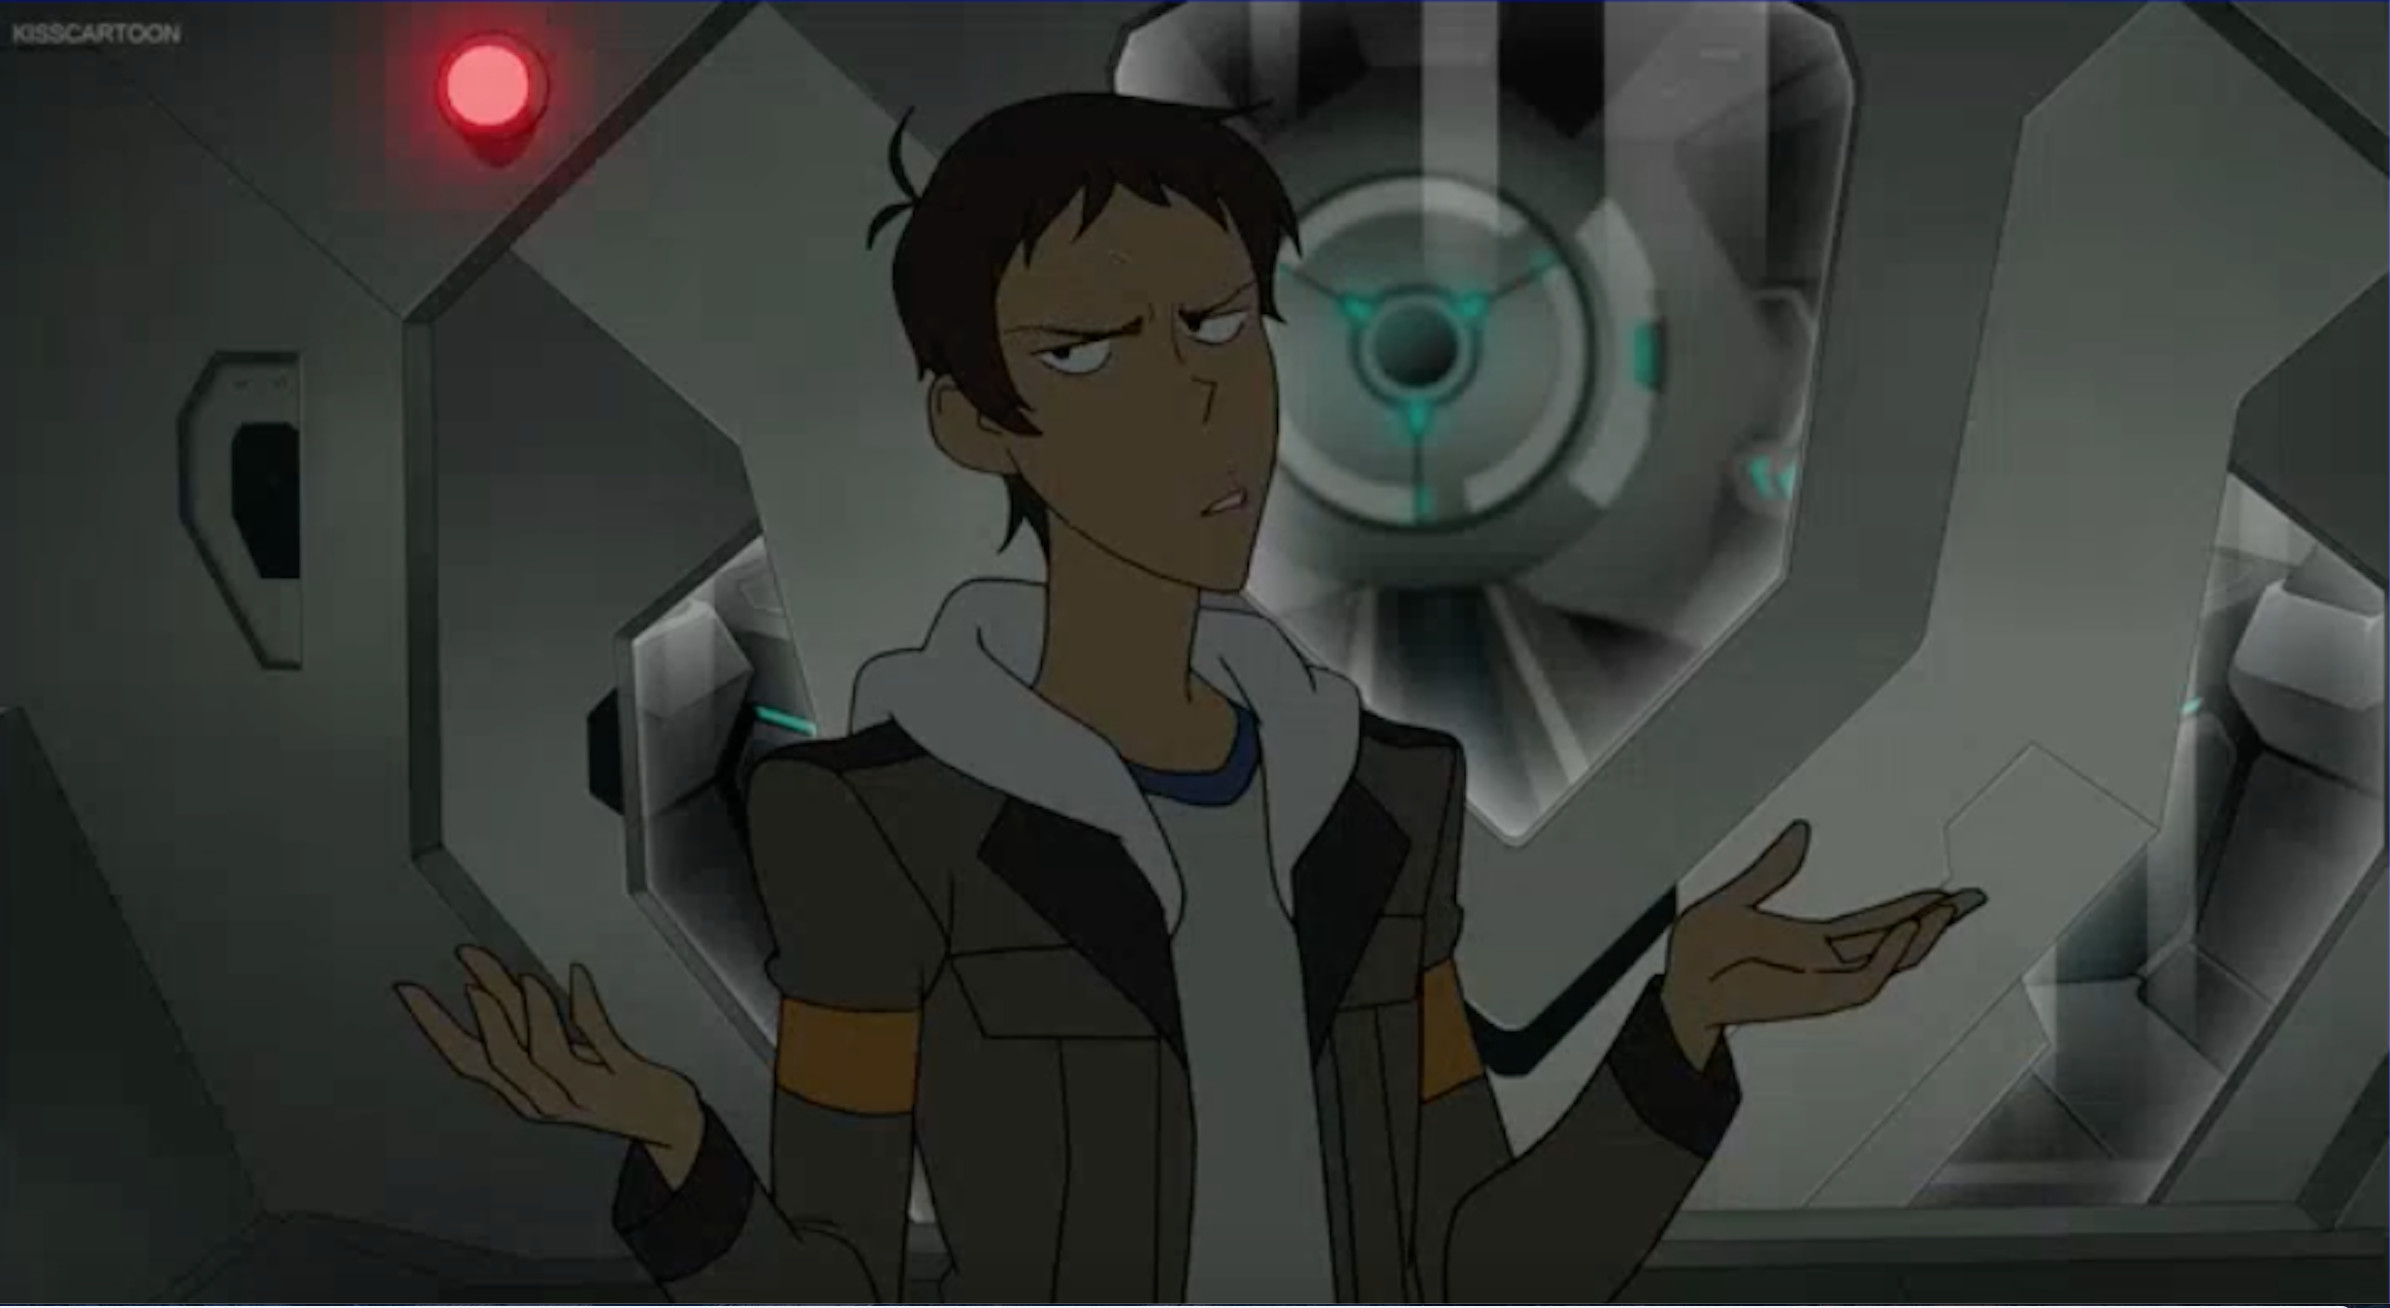 Lance locked in the airlock from Voltron Legendary Defender